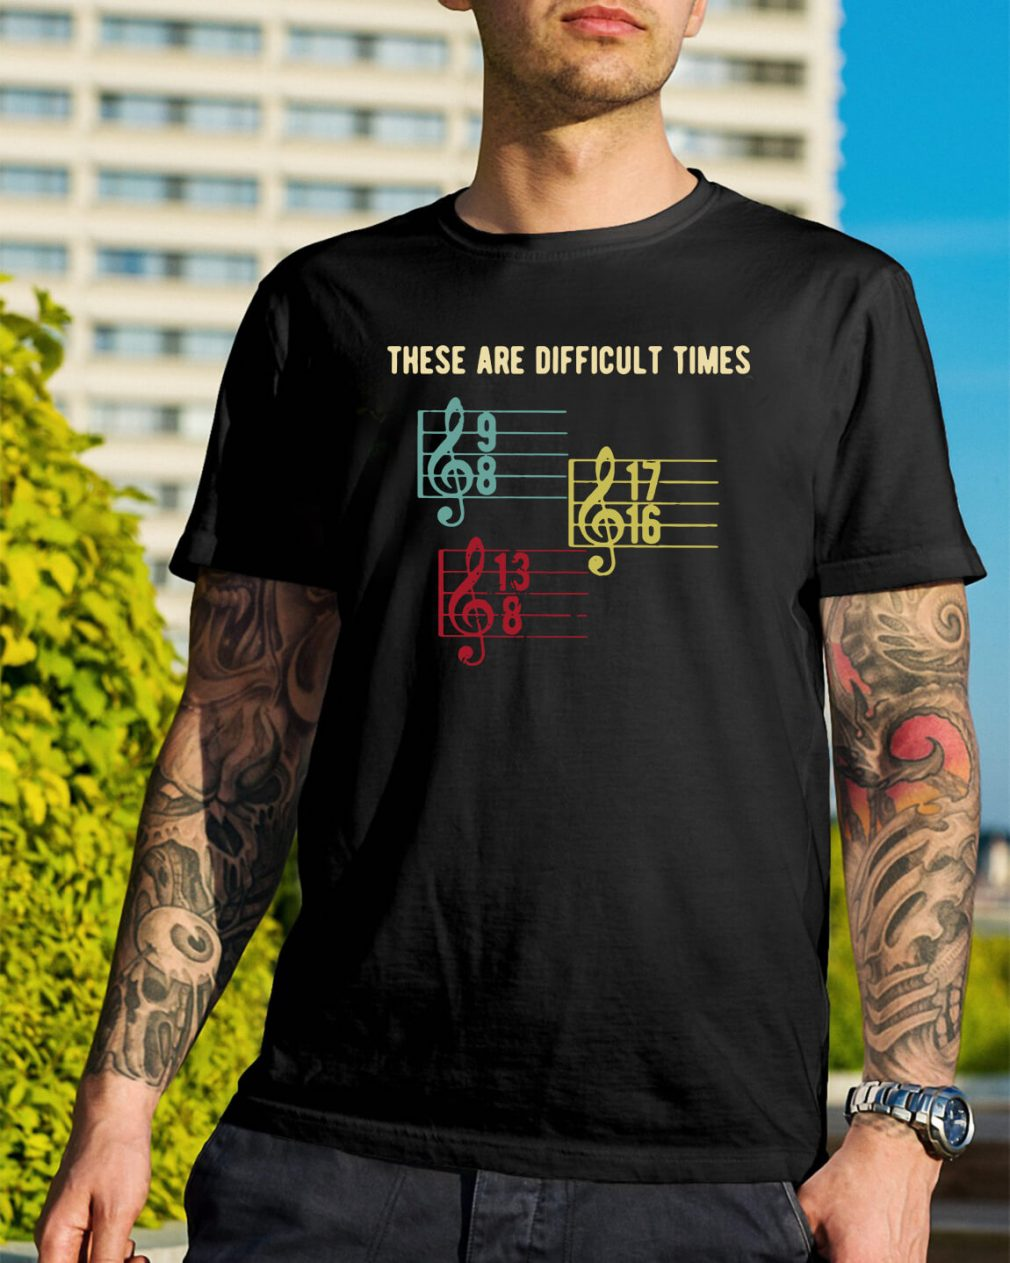 There are difficult times shirt